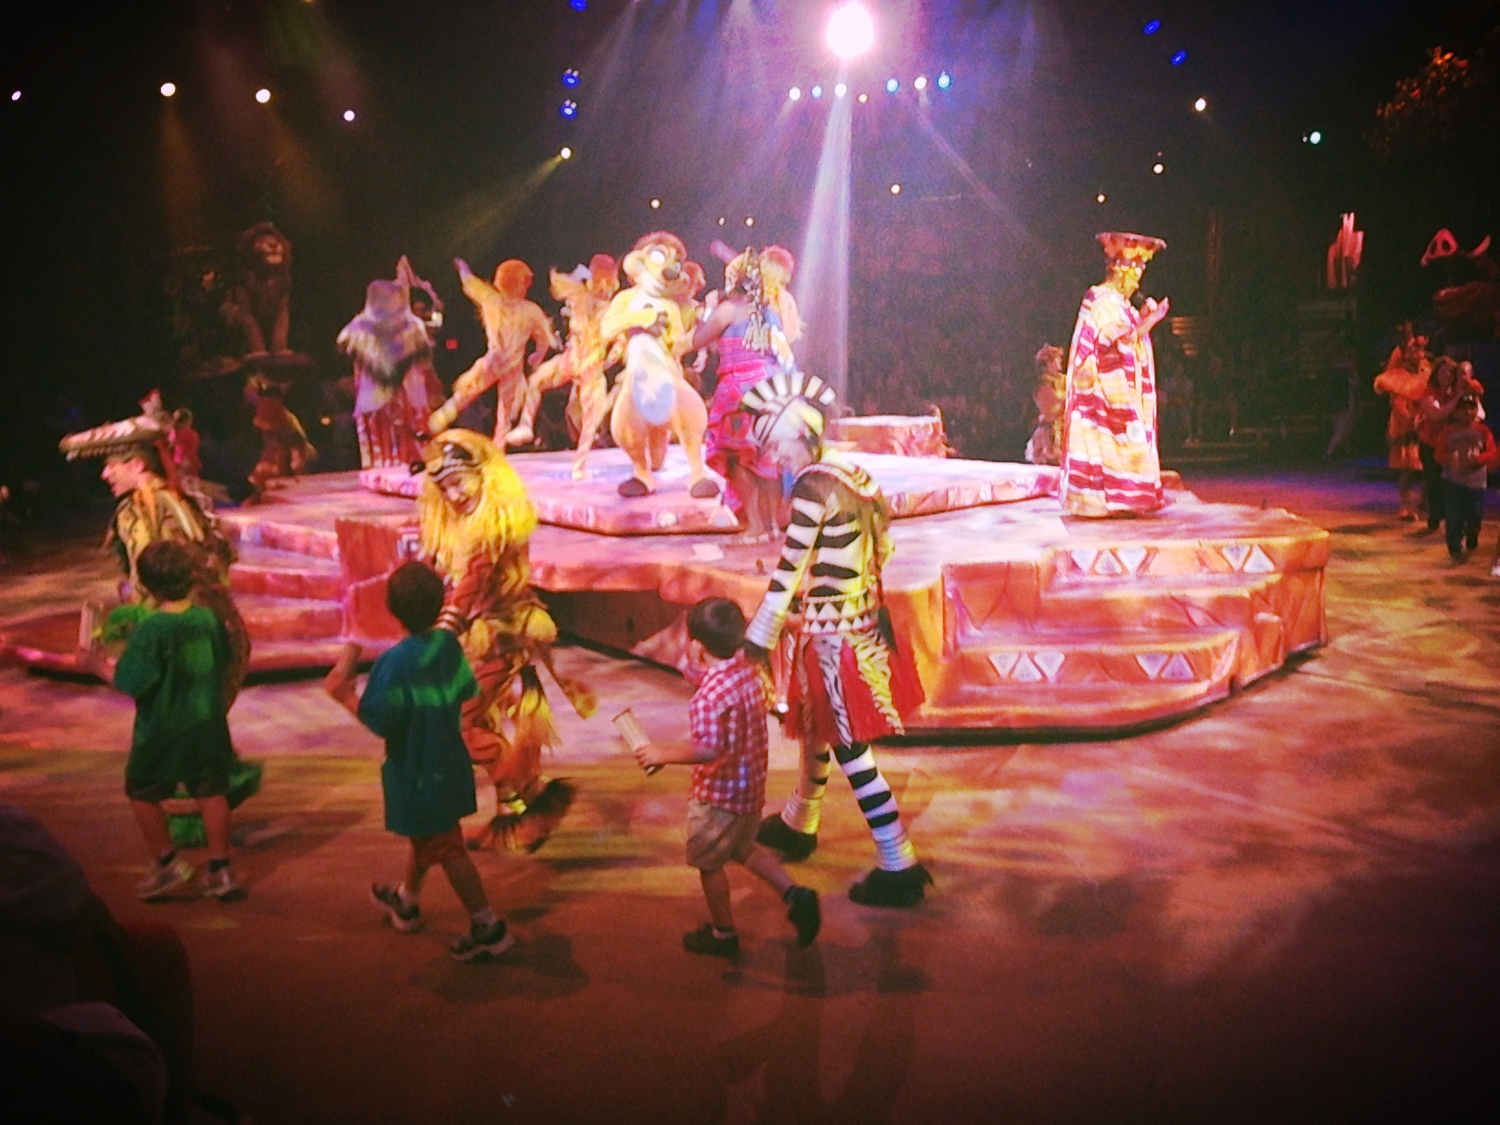 At the Lion King show, Mark Jacinto was chosen to meet the characters. He gave a high five to the guy.